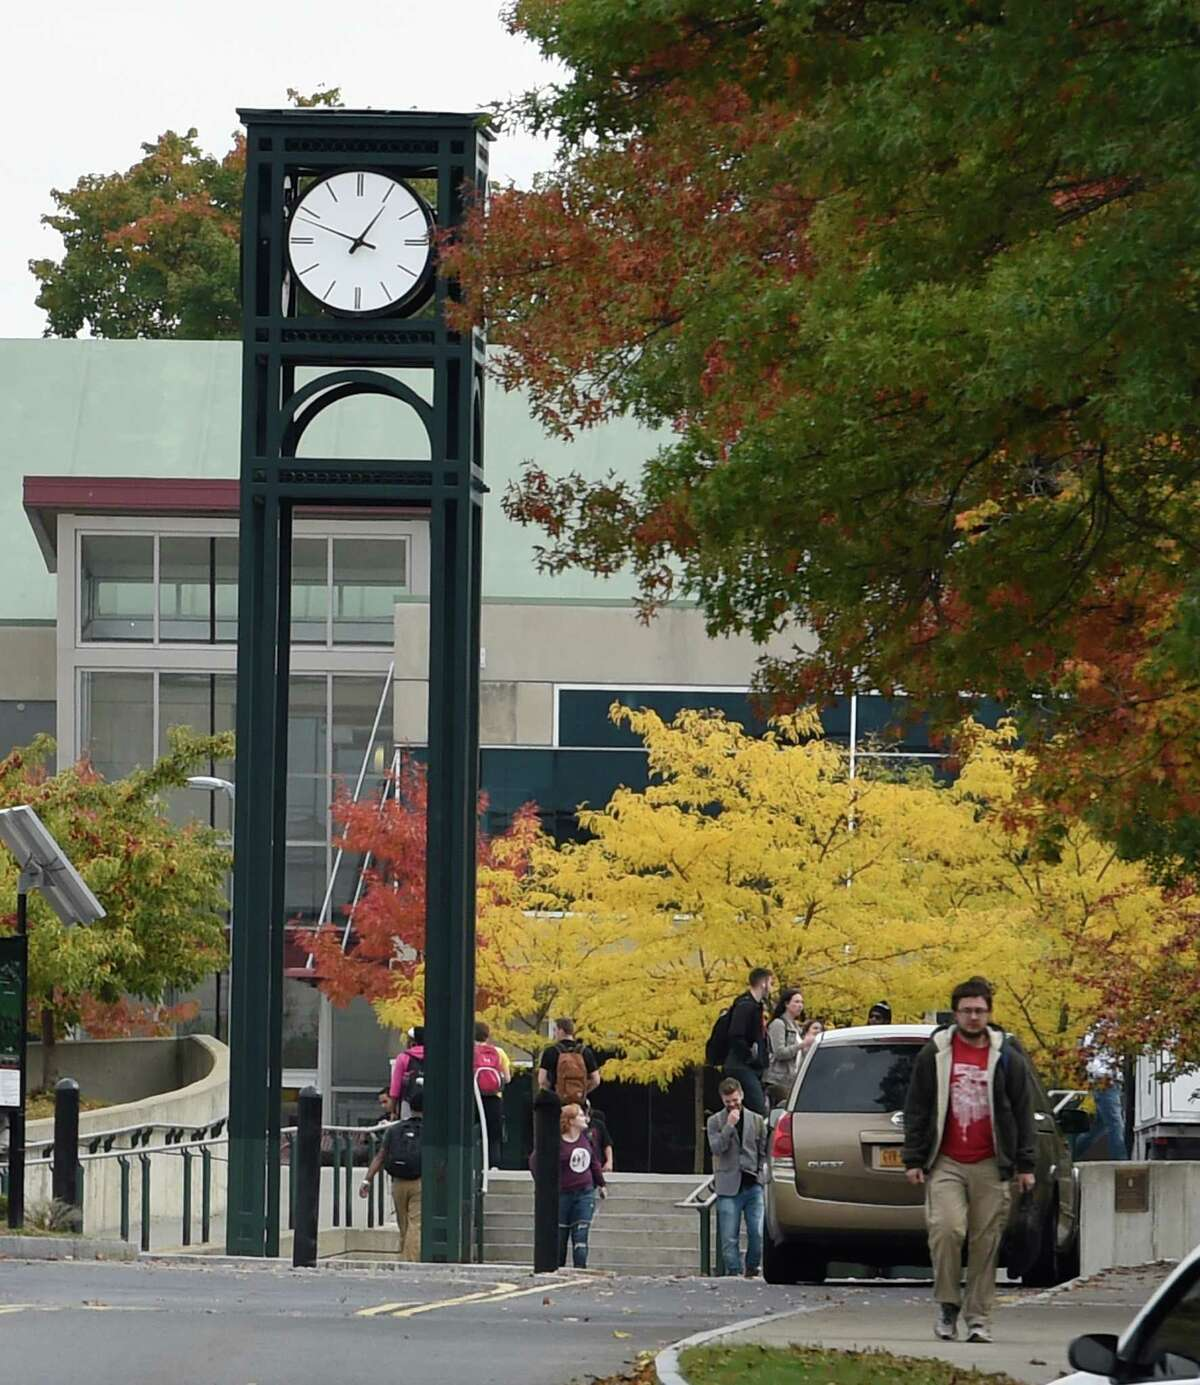 Hudson Valley Community College Tuesday afternoon Oct. 13, 2015 in Troy, N.Y. (Skip Dickstein/Times Union)